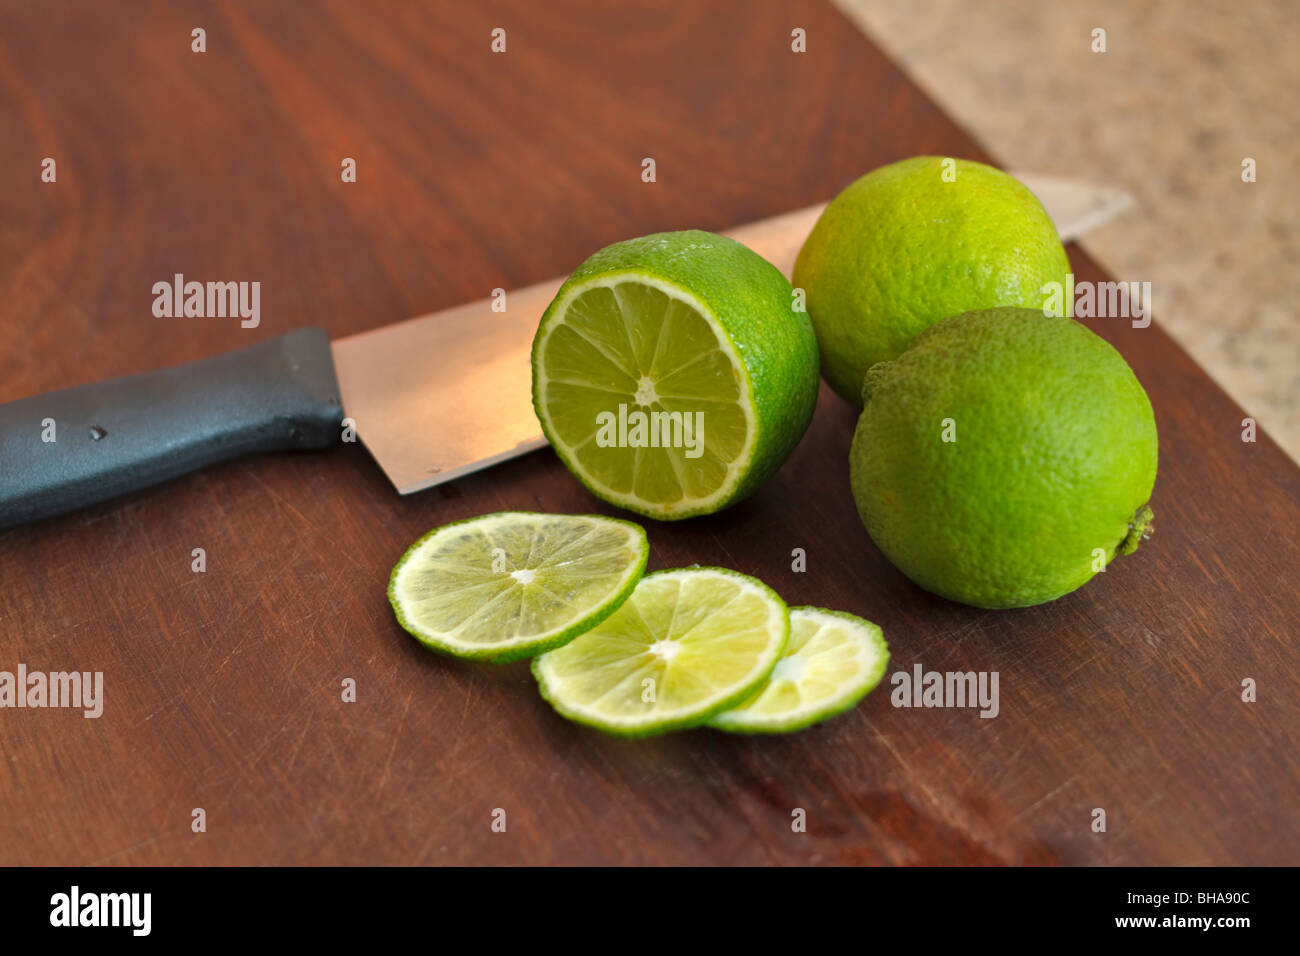 Cutting fresh limes on a chopping board - Stock Image